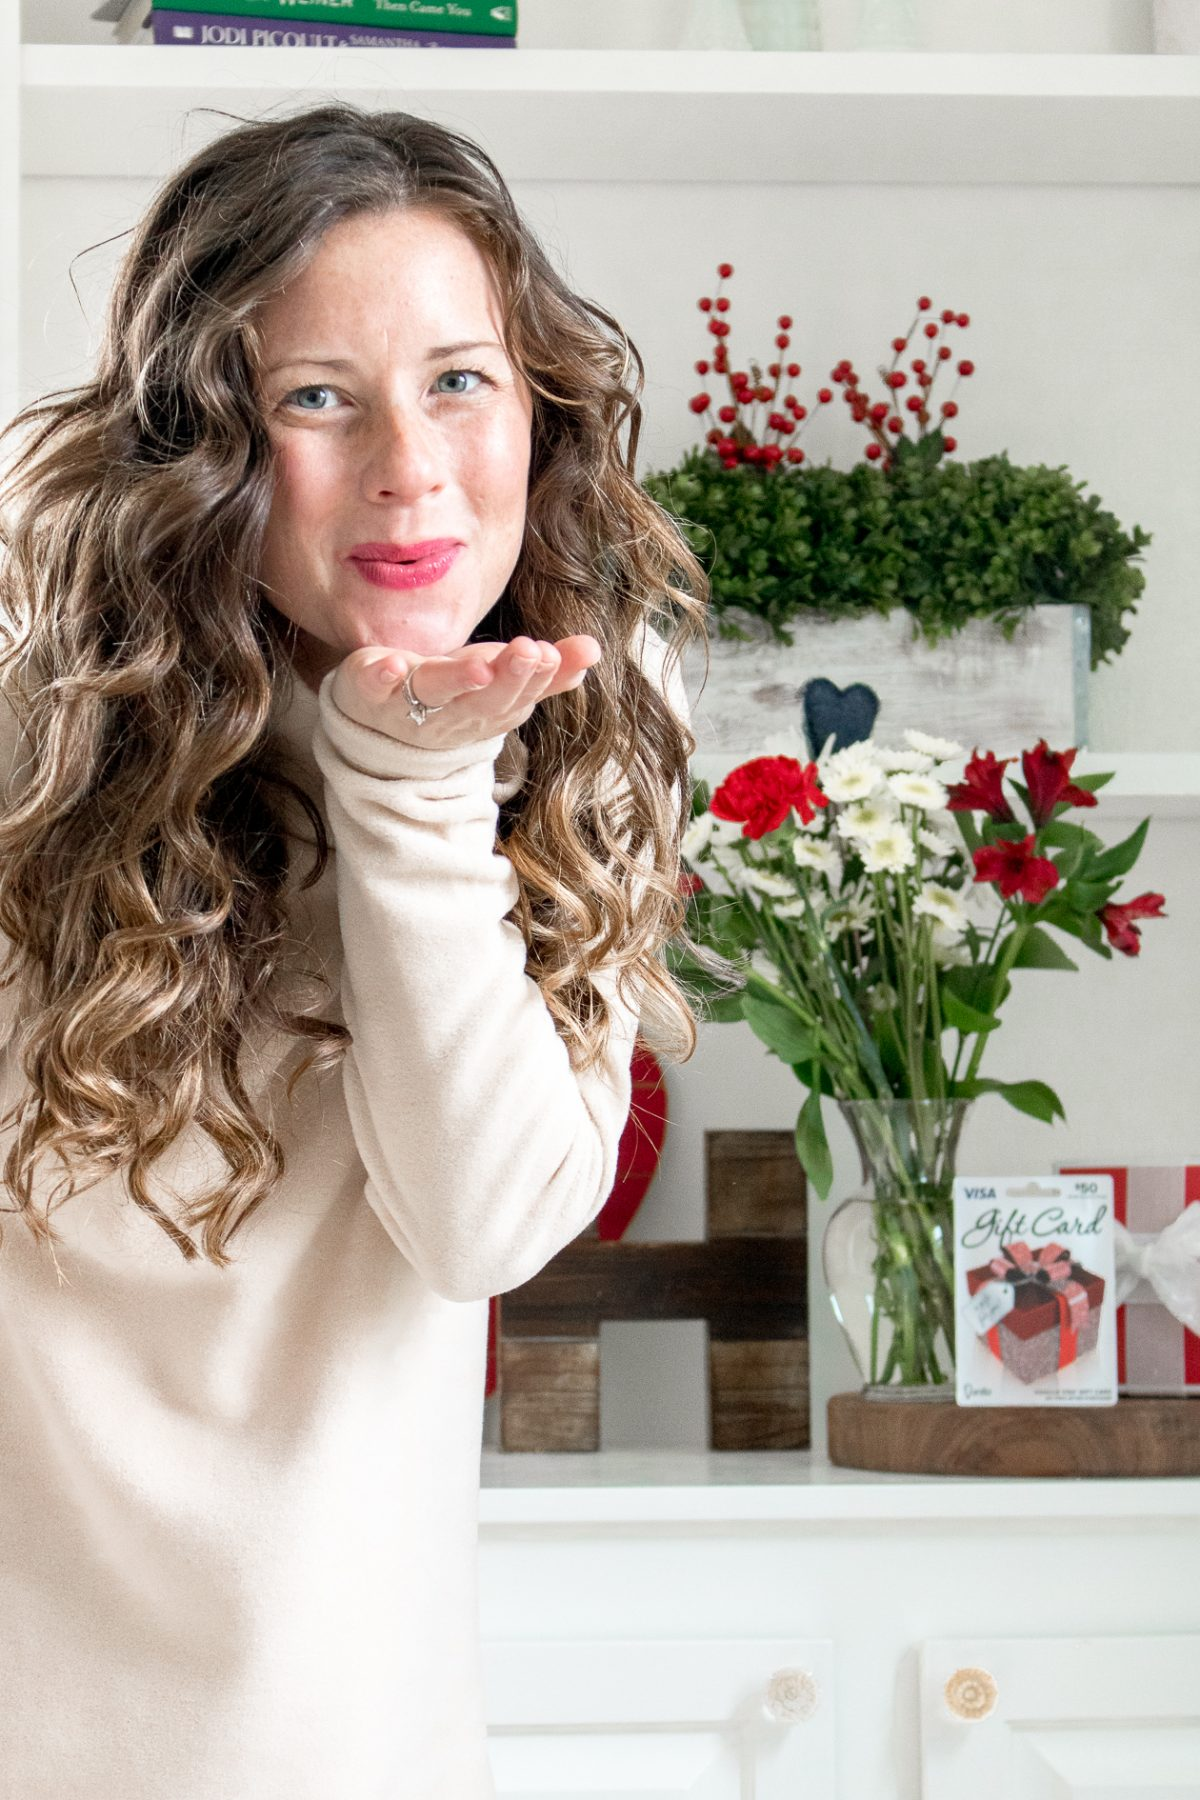 Woman wearing tan shirt and pink lipstick blowing a kiss at the camera - Last Minute Valentine's Day Gifts